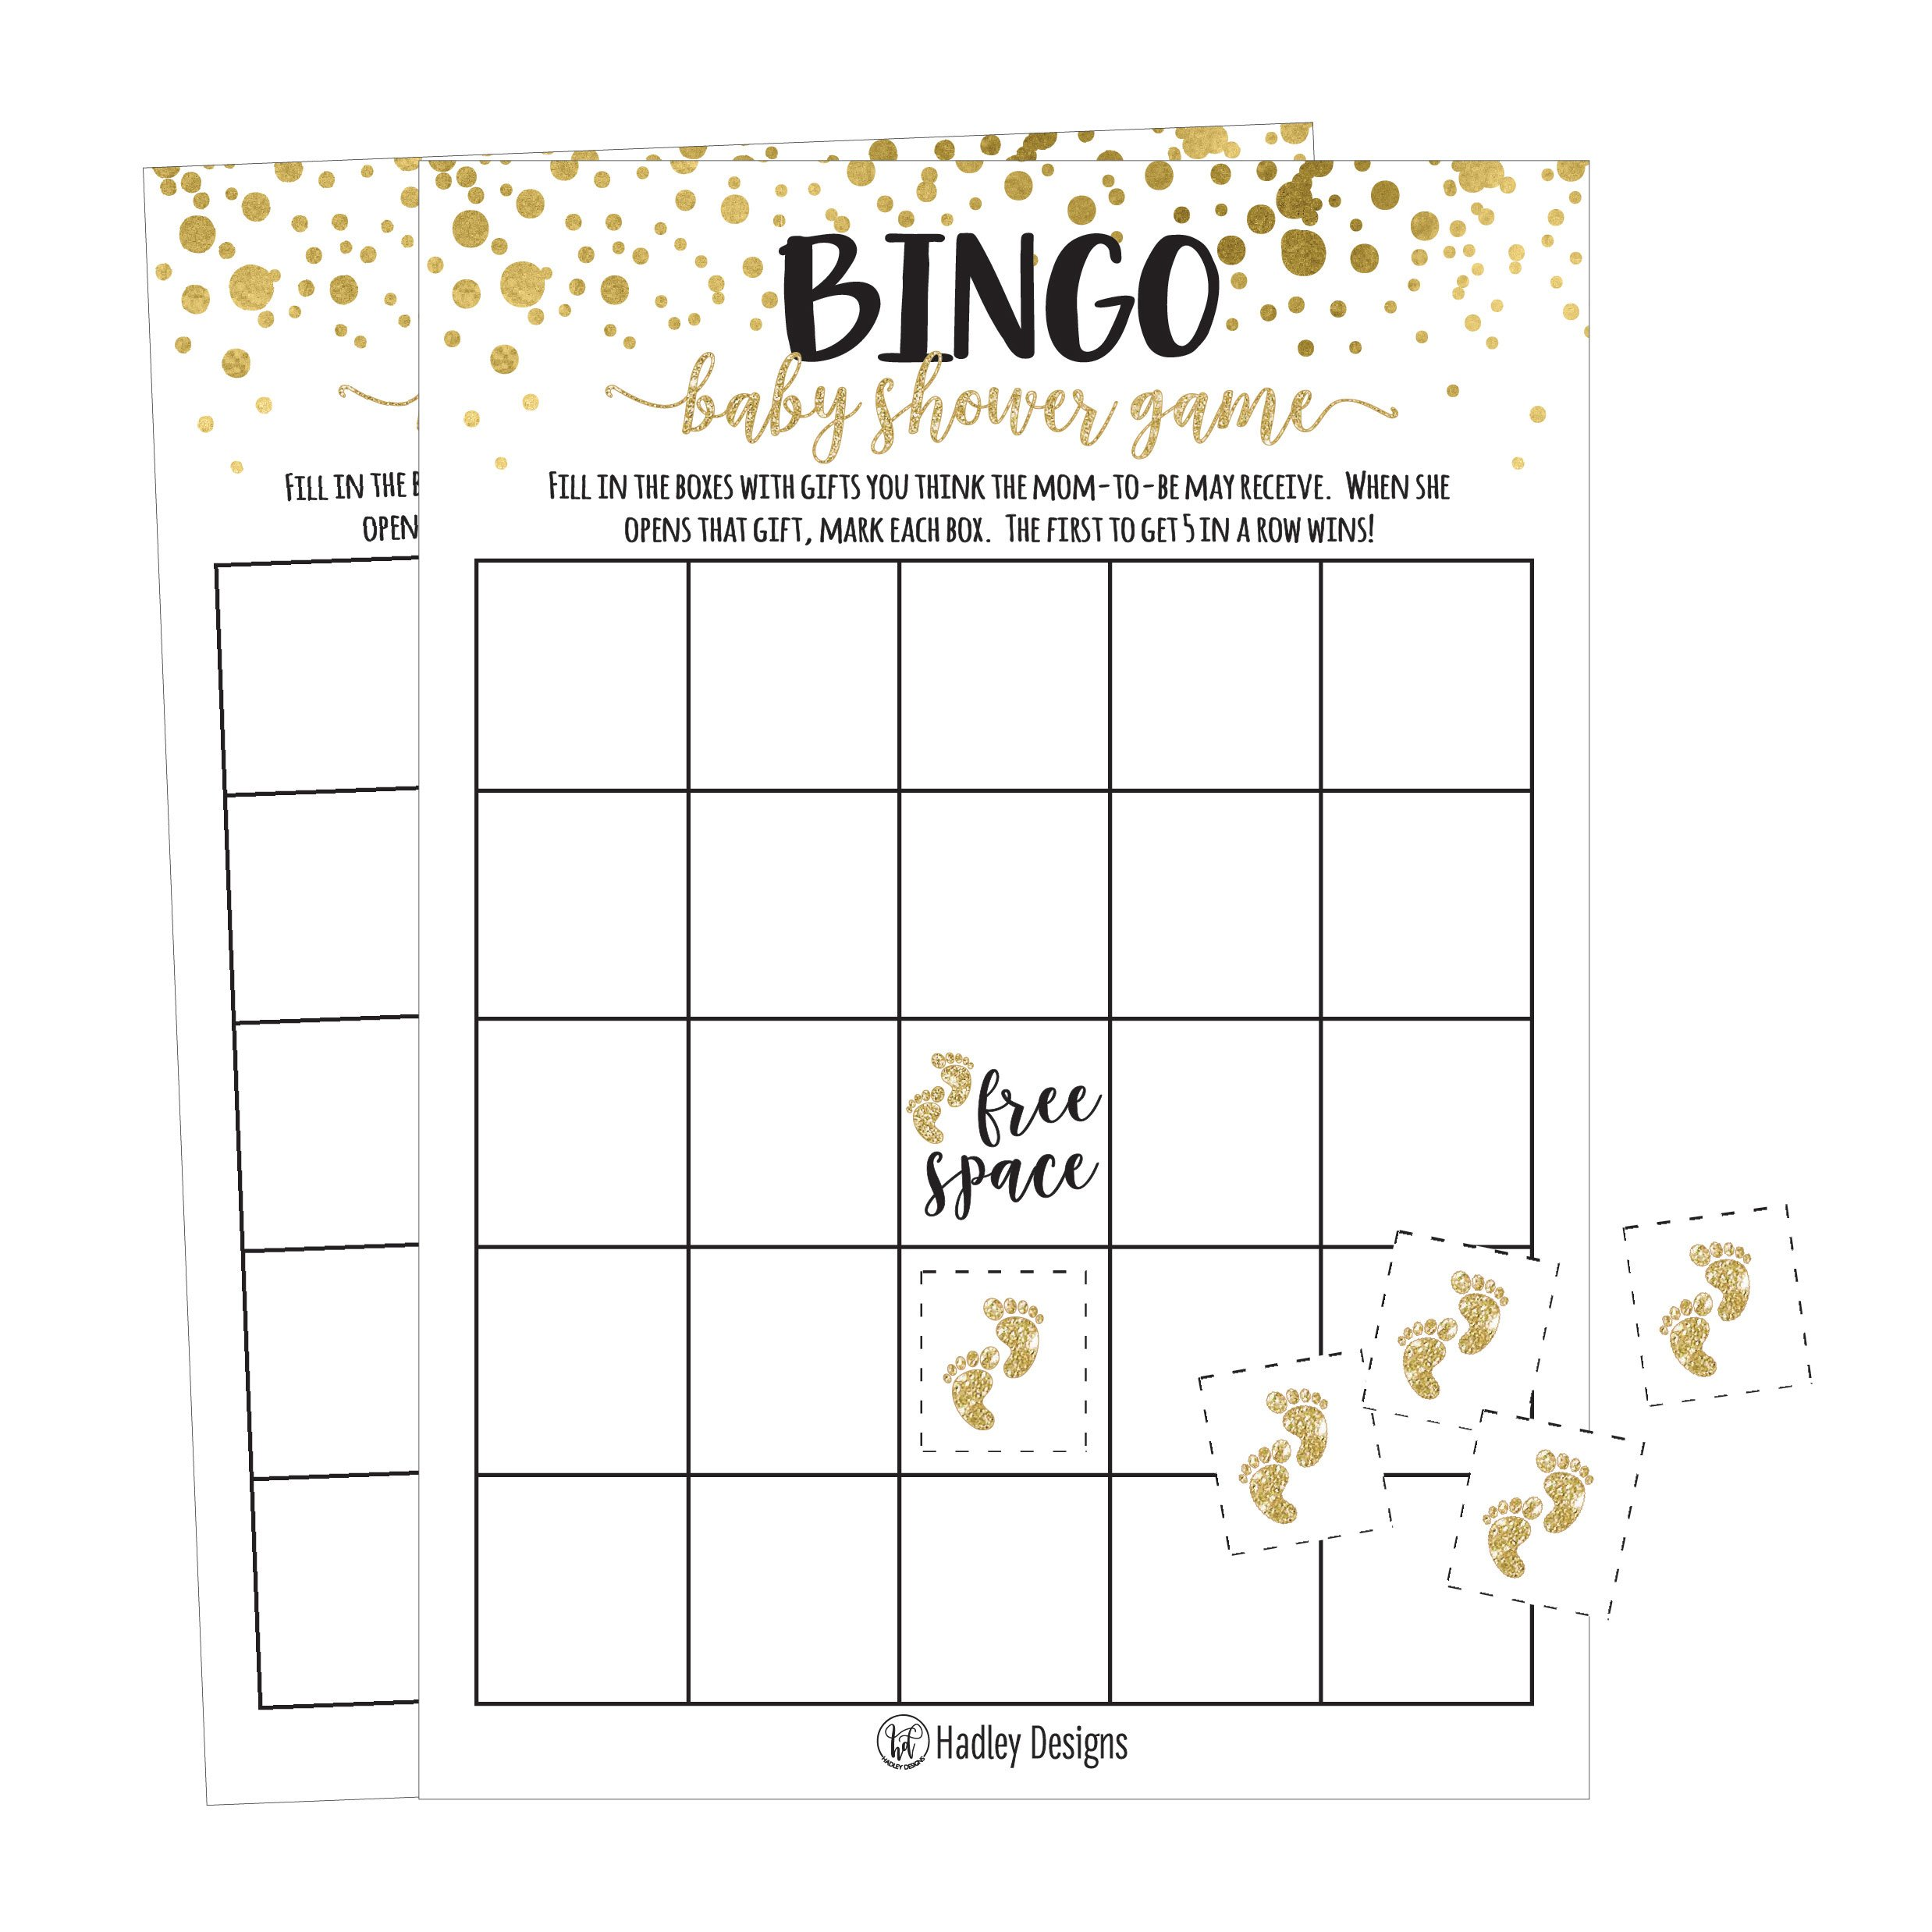 25 Gold Bingo Game Cards For Baby Shower, Bulk Blank Bingo Squares, PLUS 25 Pack of Baby Feet Game Chips, Funny Baby Party Ideas and Supplies For Girl or Boy, Cute Paper Pattern For Kids and Children by Hadley Designs